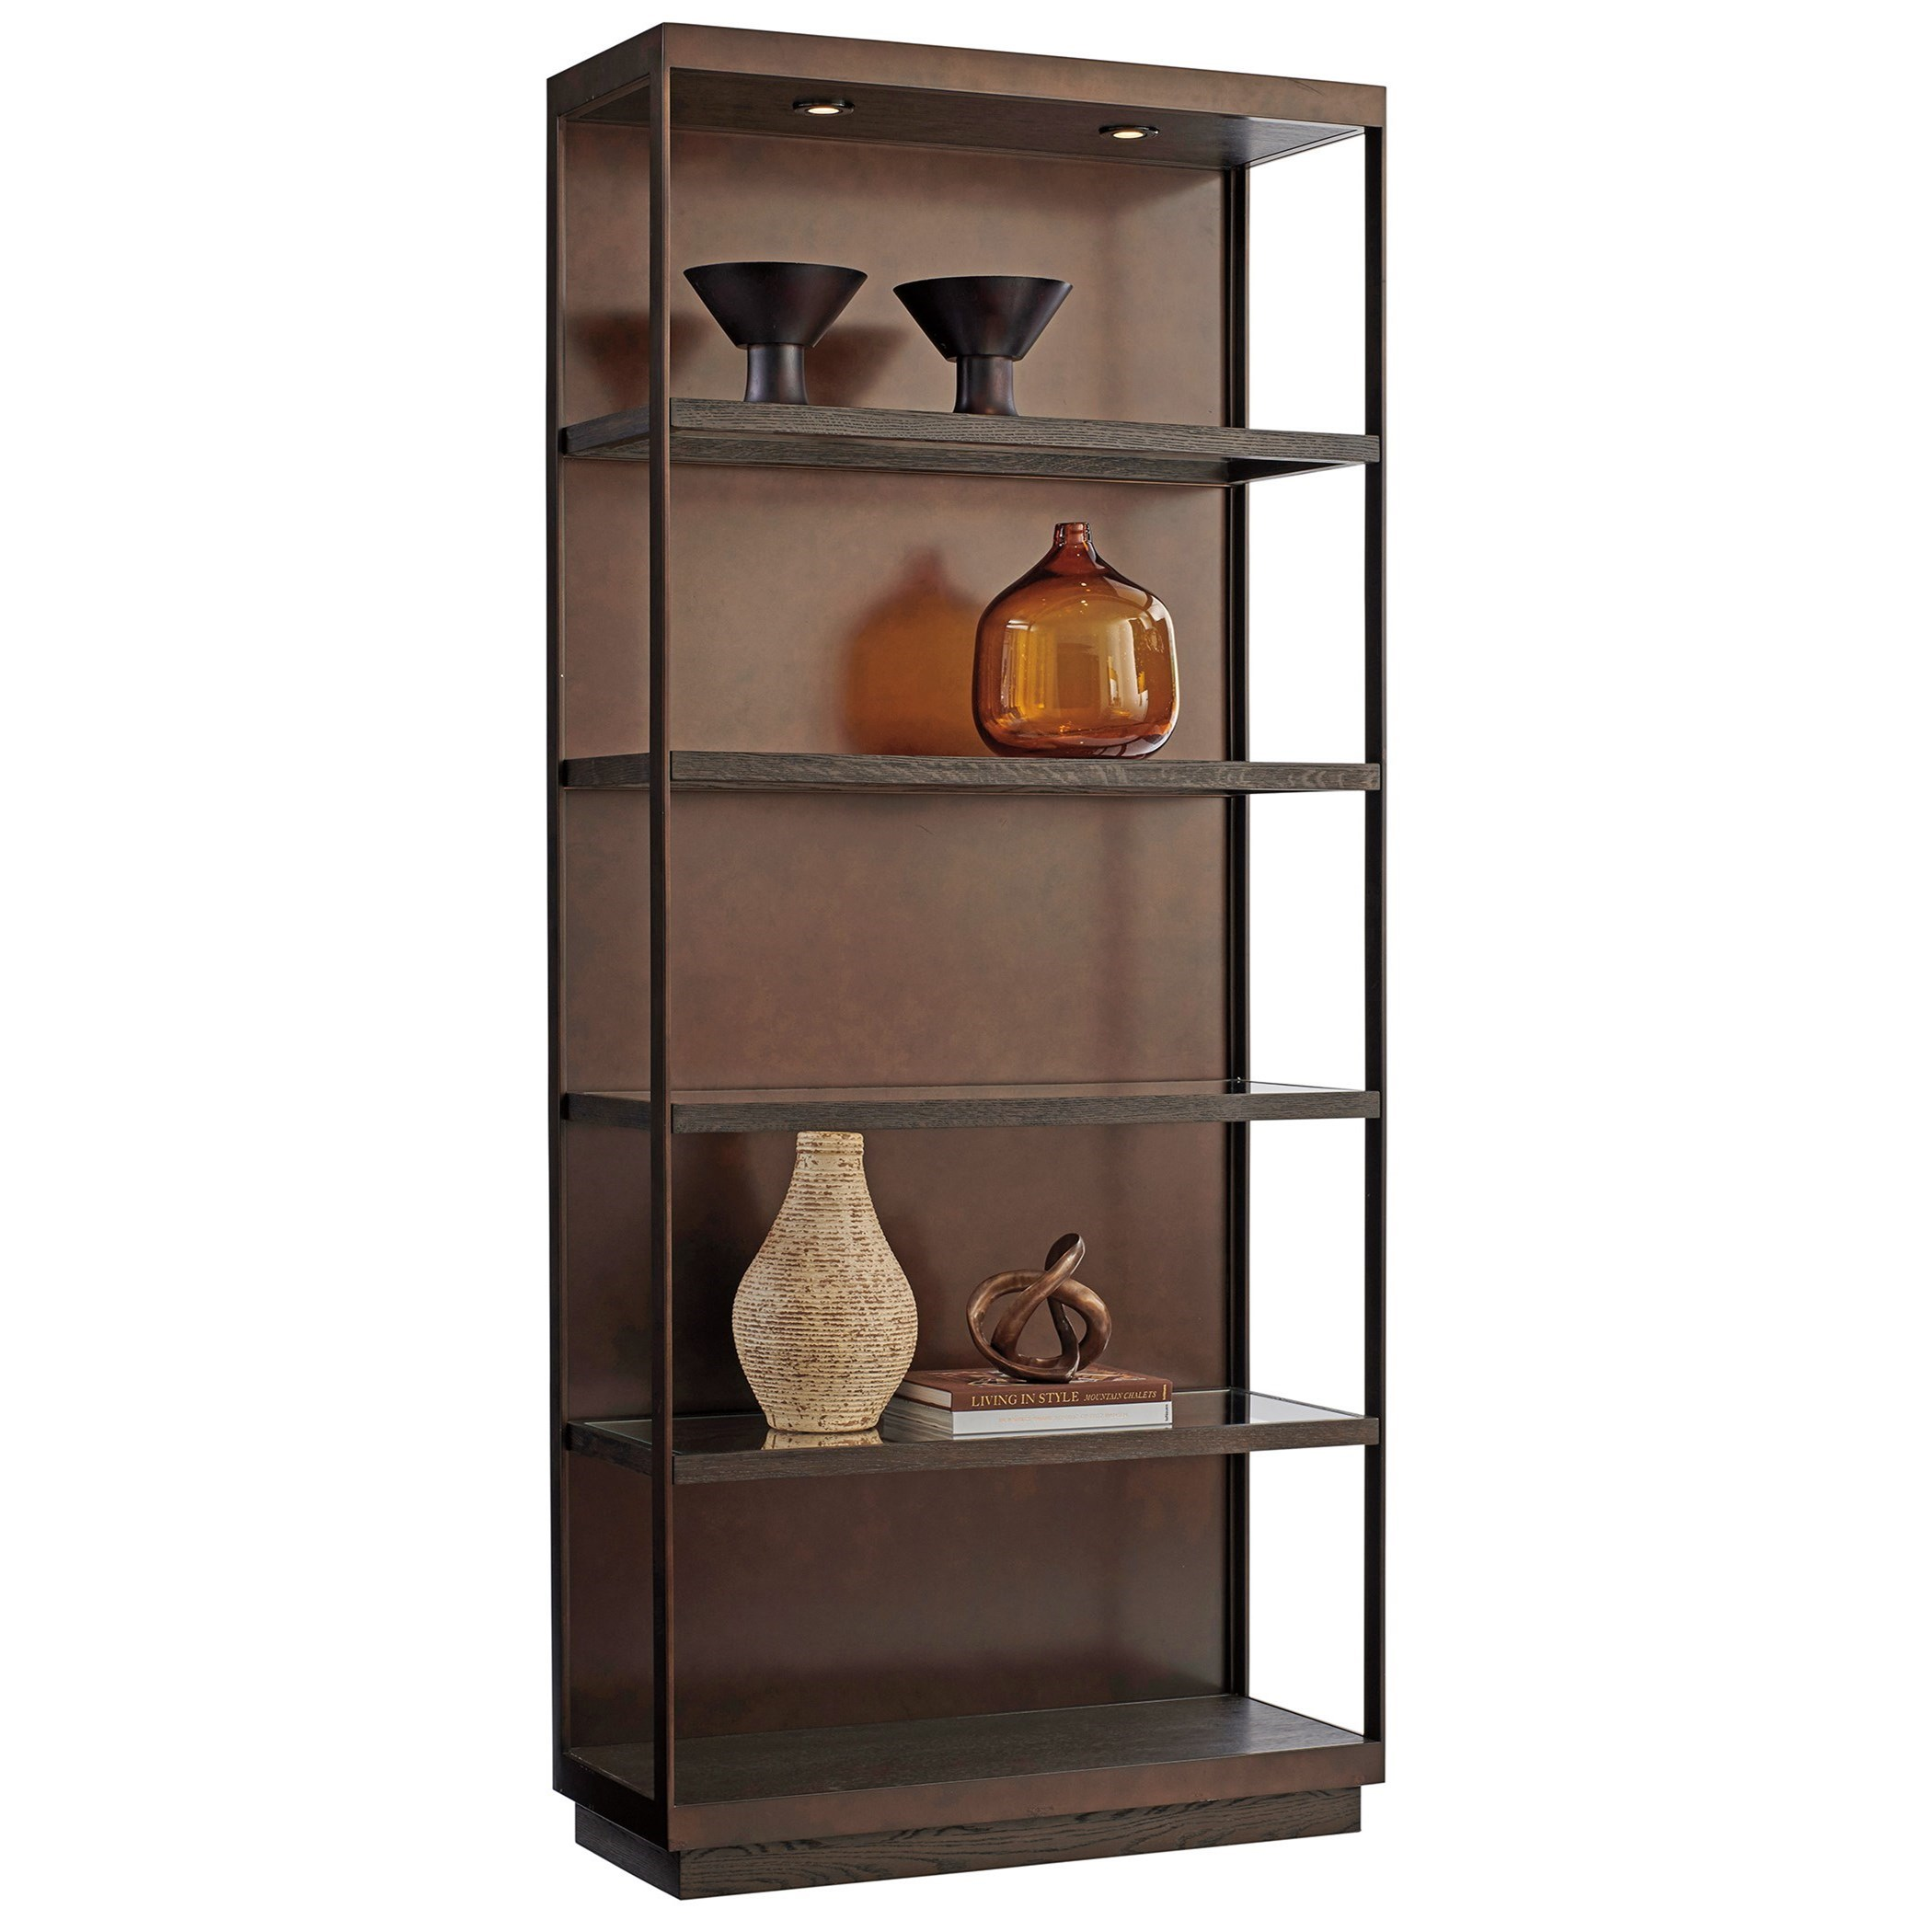 Park City Sugarloaf Etagere by Barclay Butera at Baer's Furniture